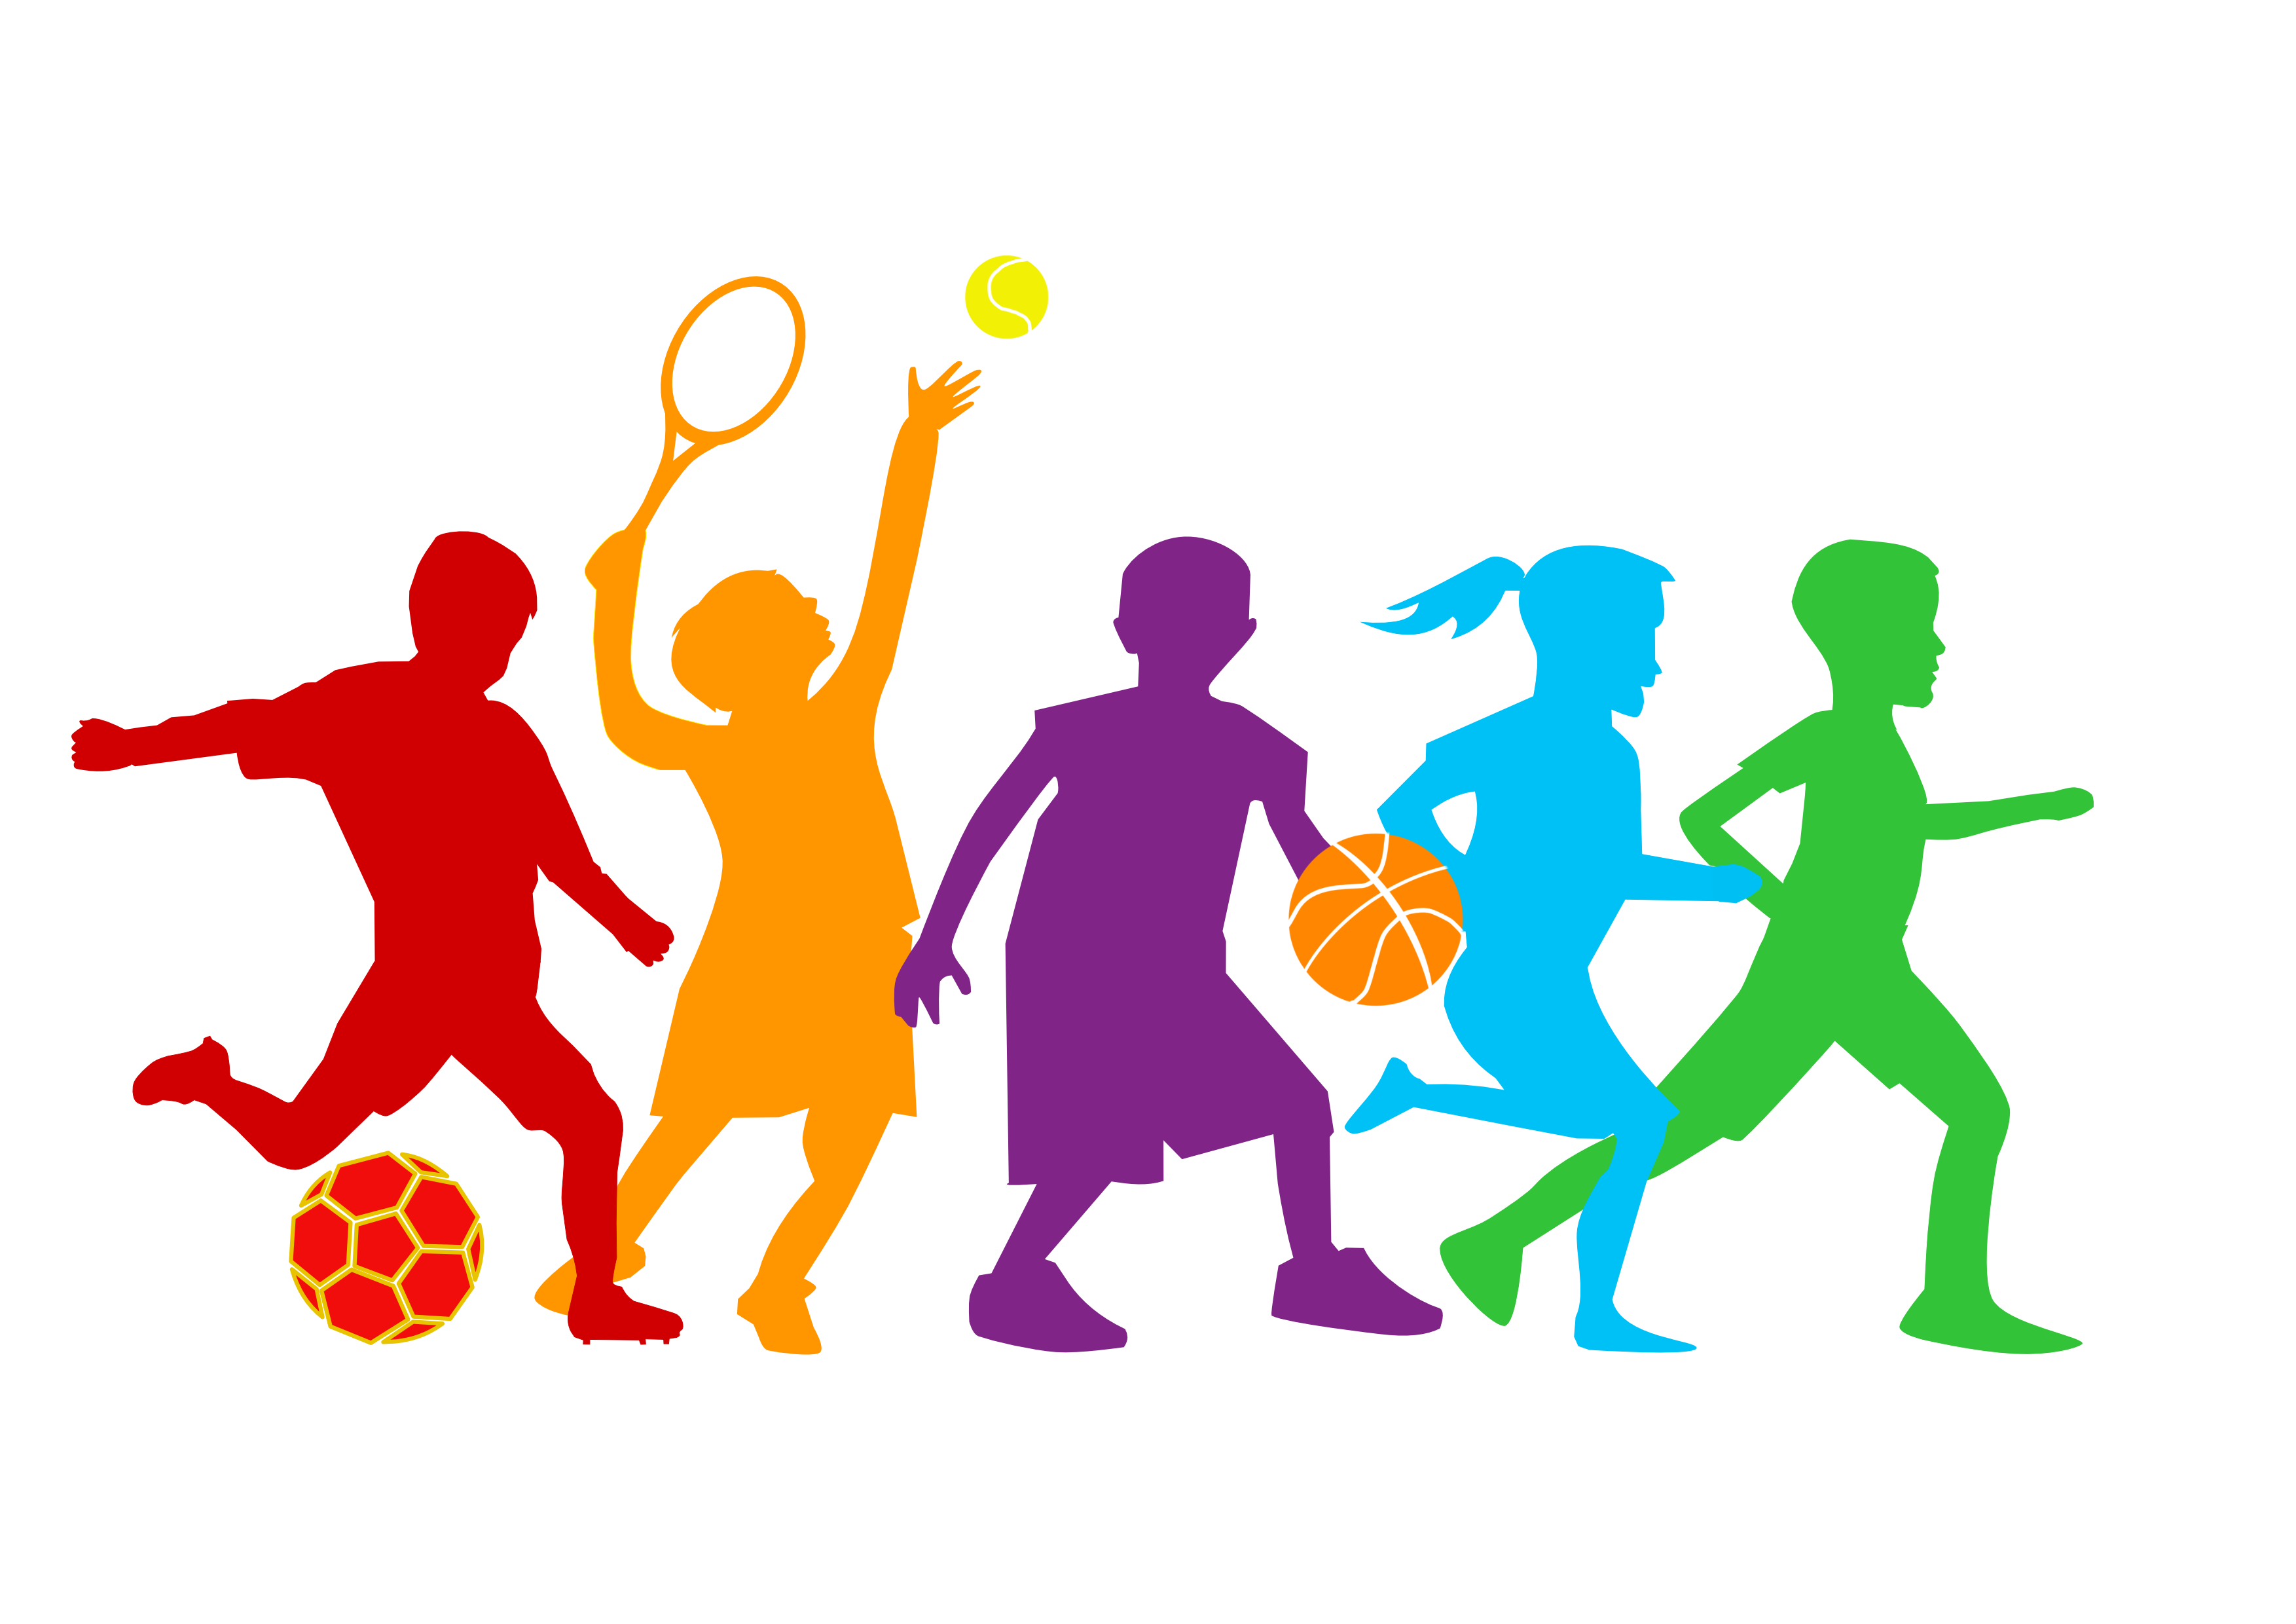 Kids Sports Background: New Guide For Sports Coaches On ADHD Published